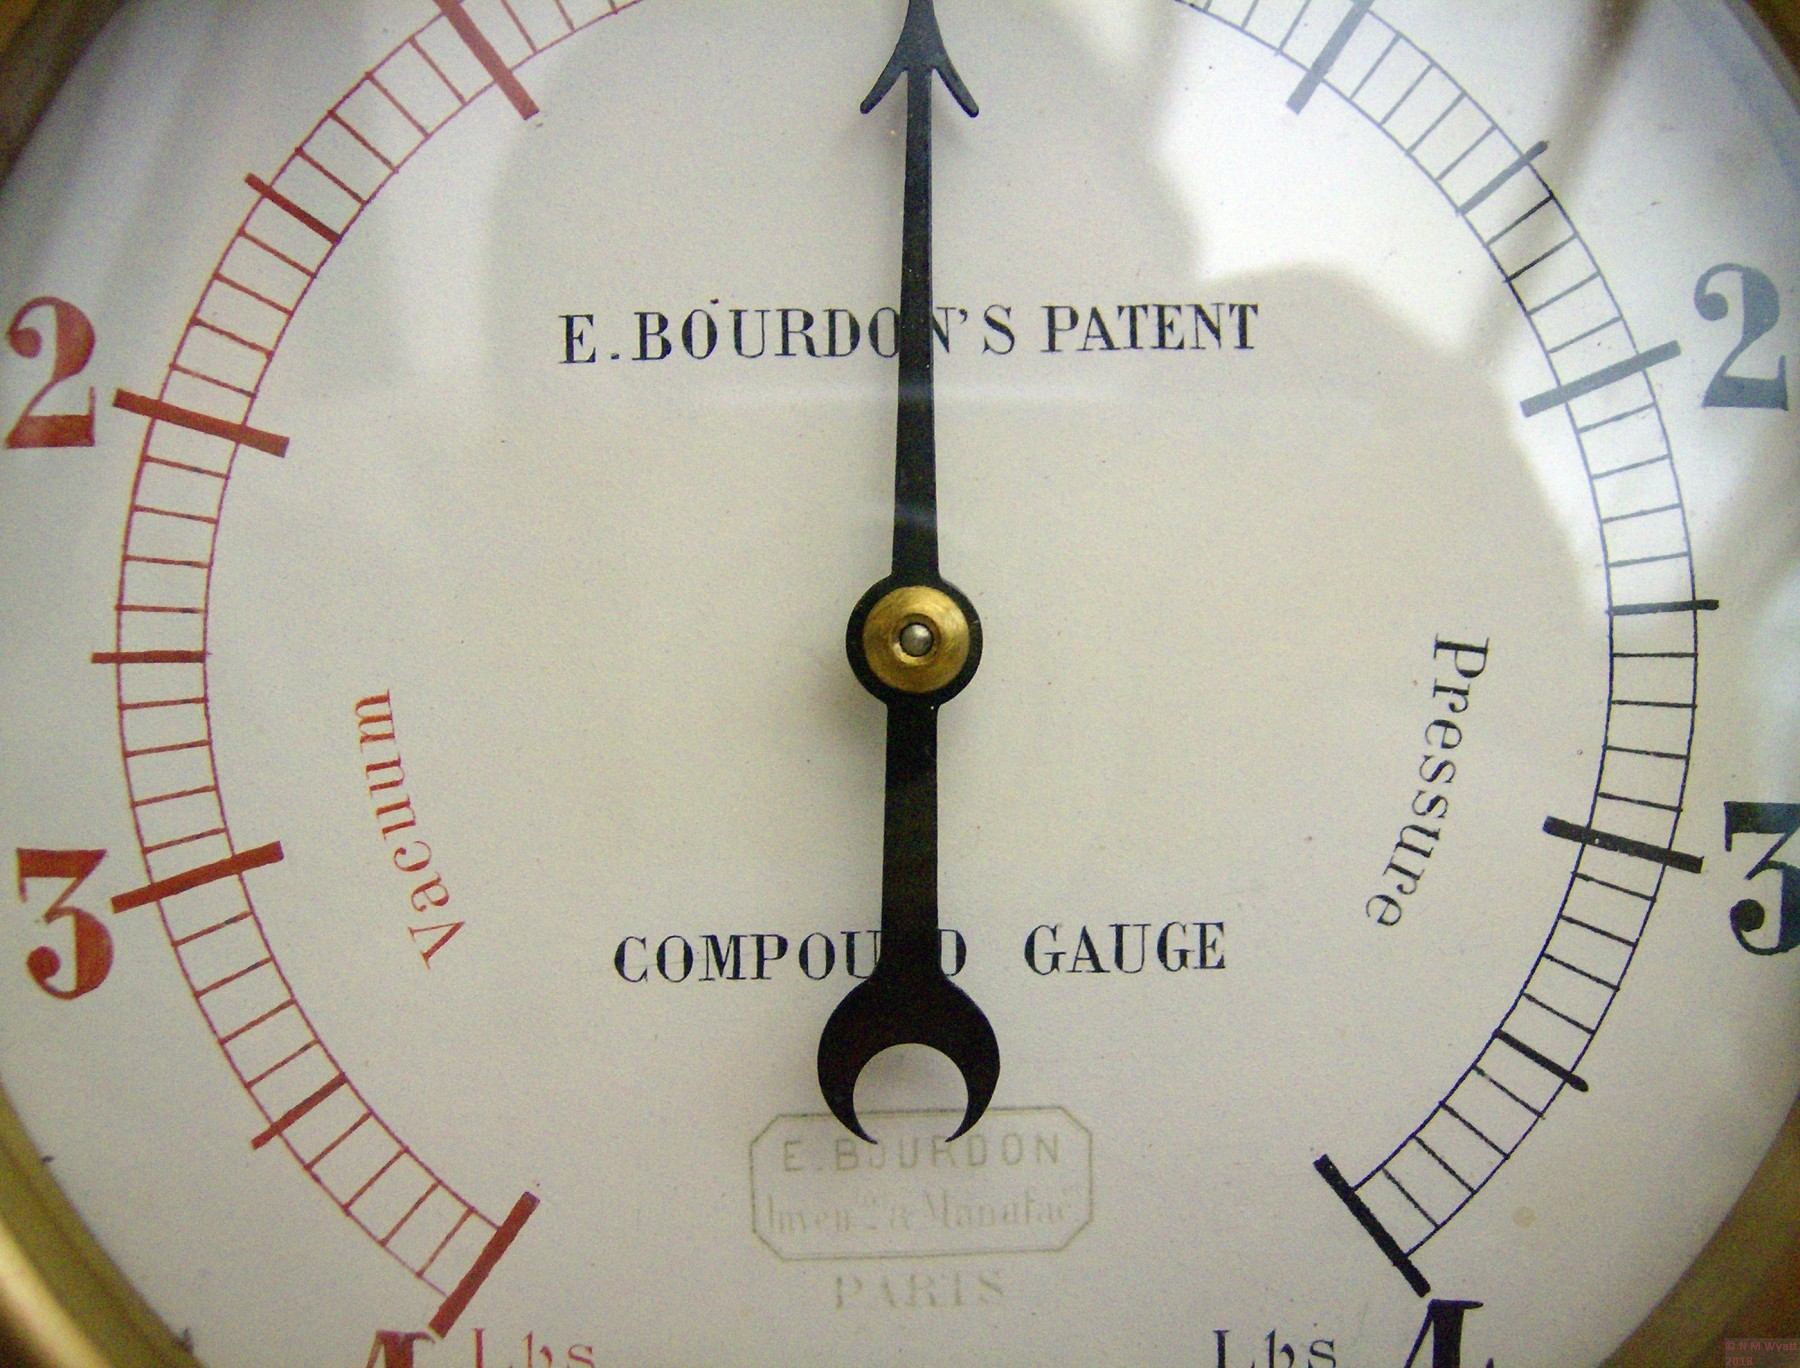 Dial of Eugene Bourdon's Patent Compound Gauge